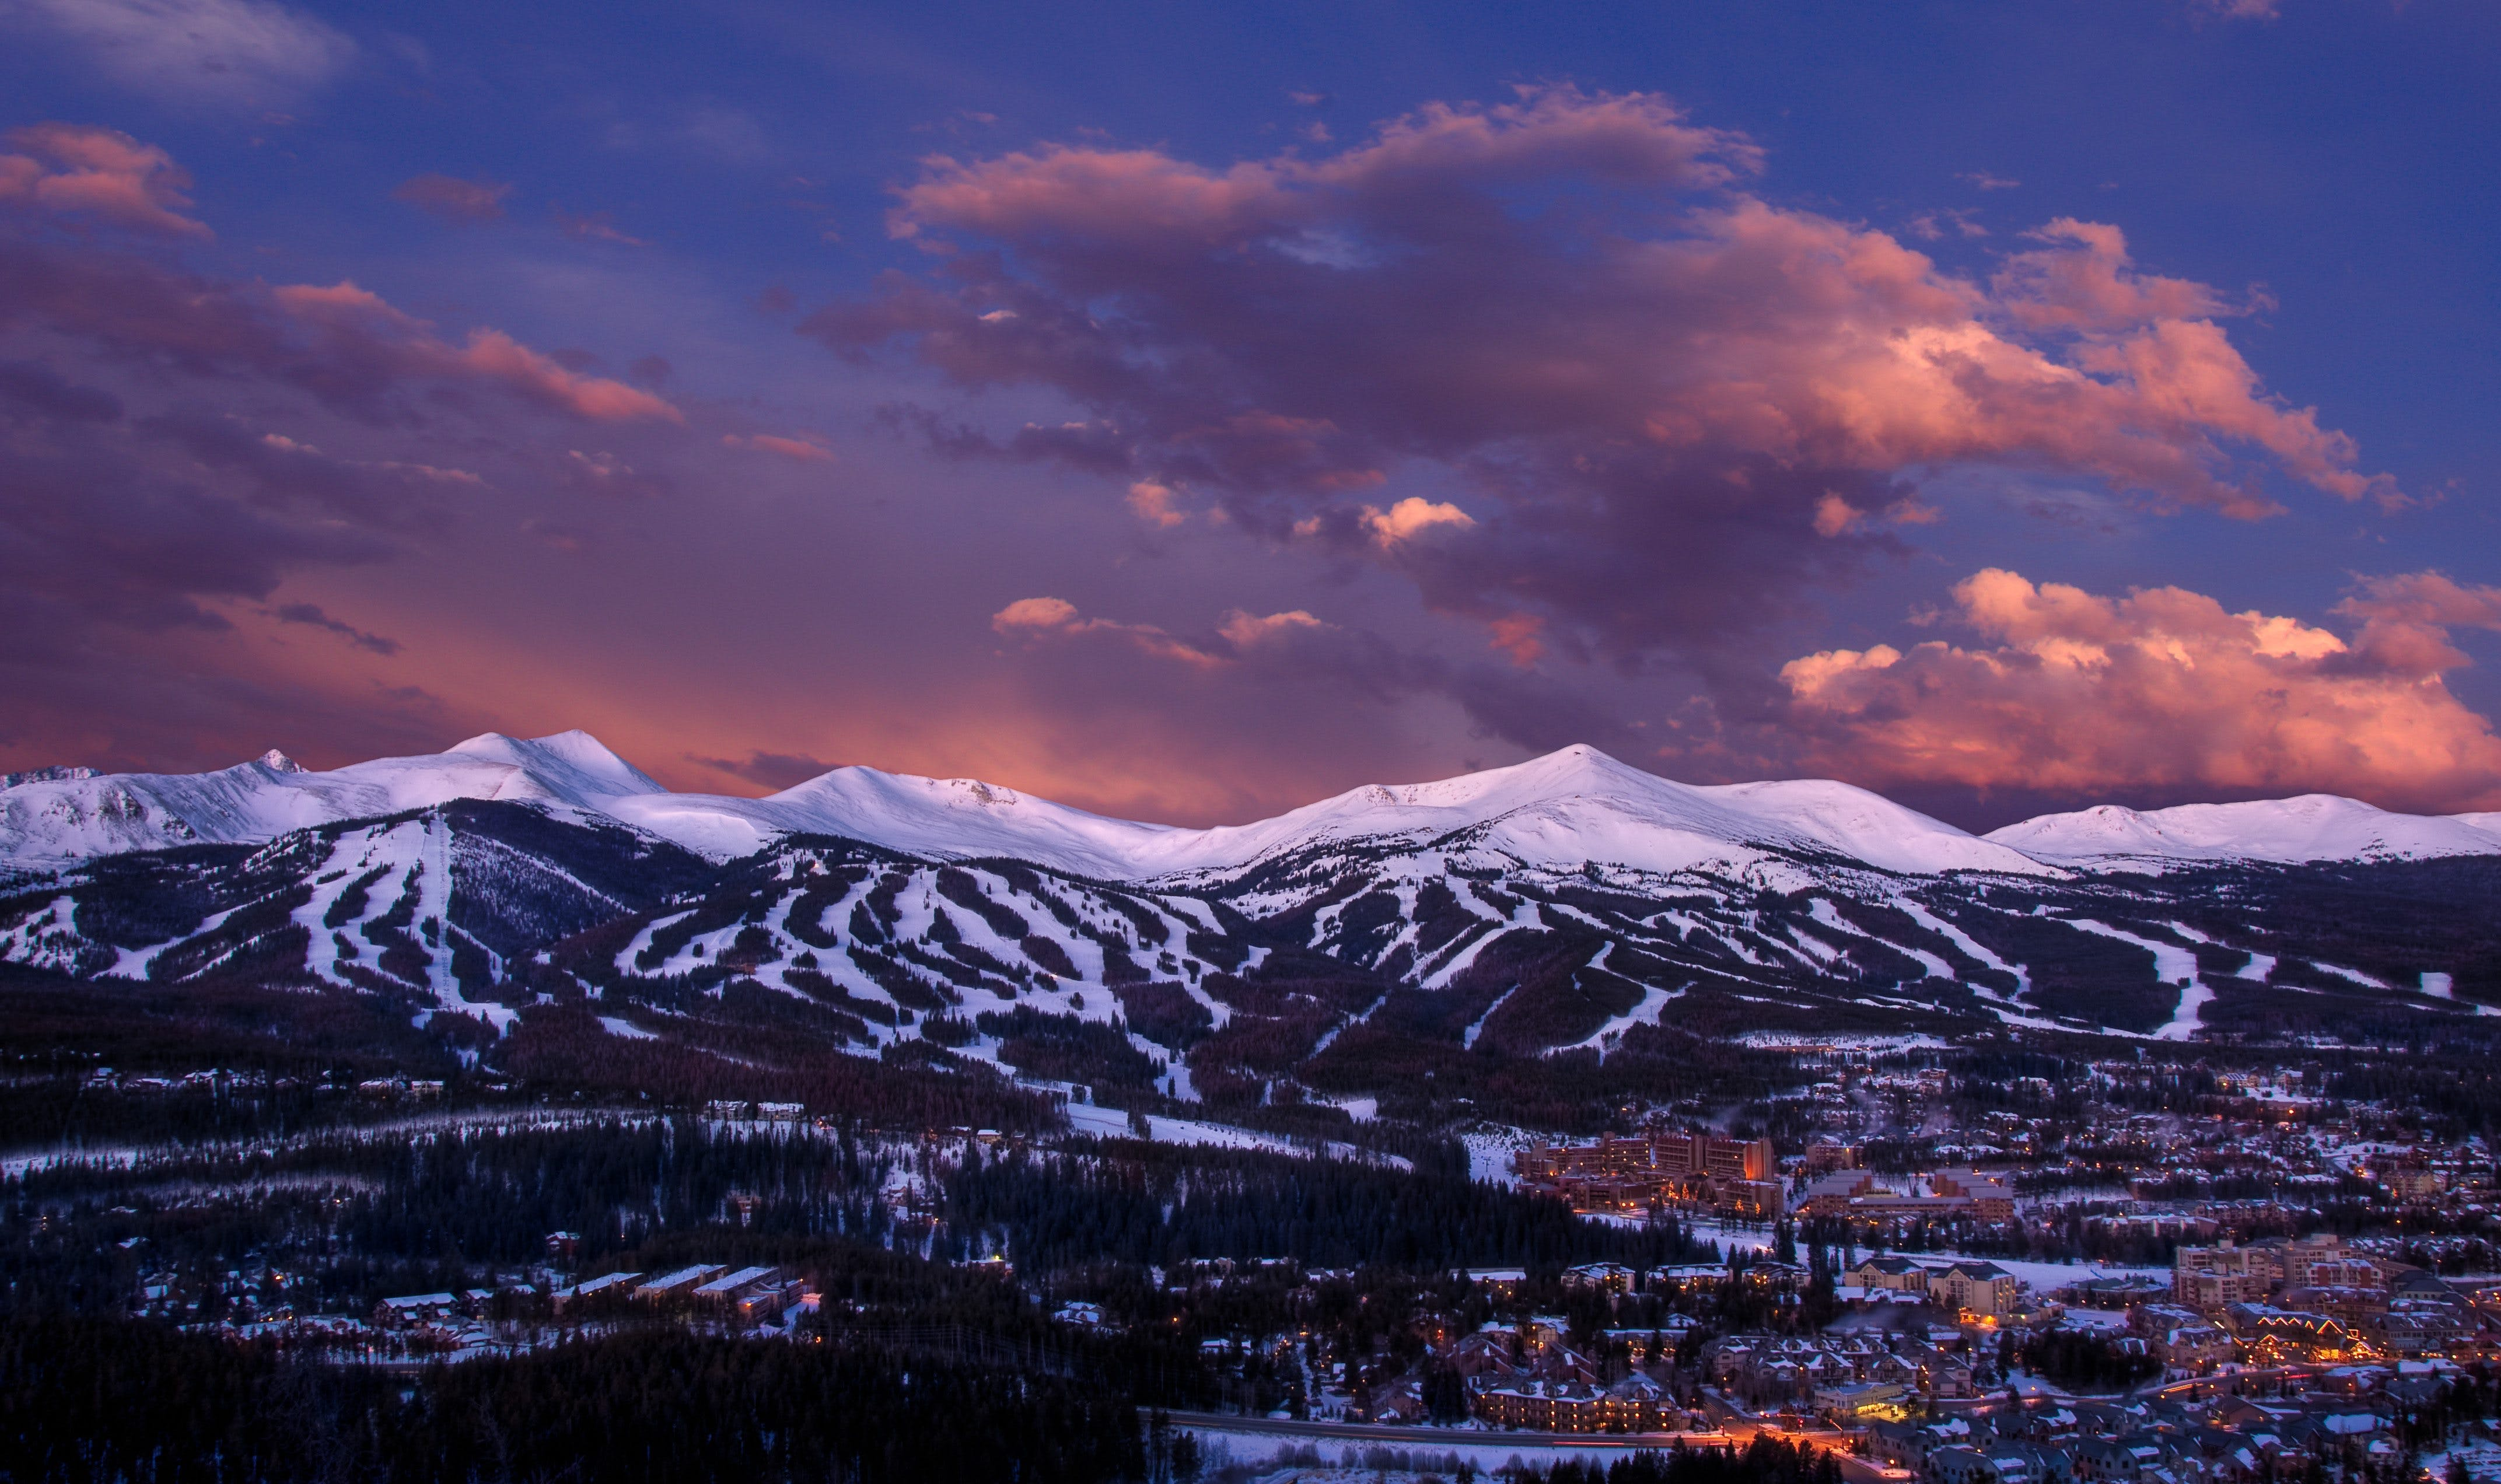 Low Carb Breckenridge – Do You Like Low Carb and Skiing?